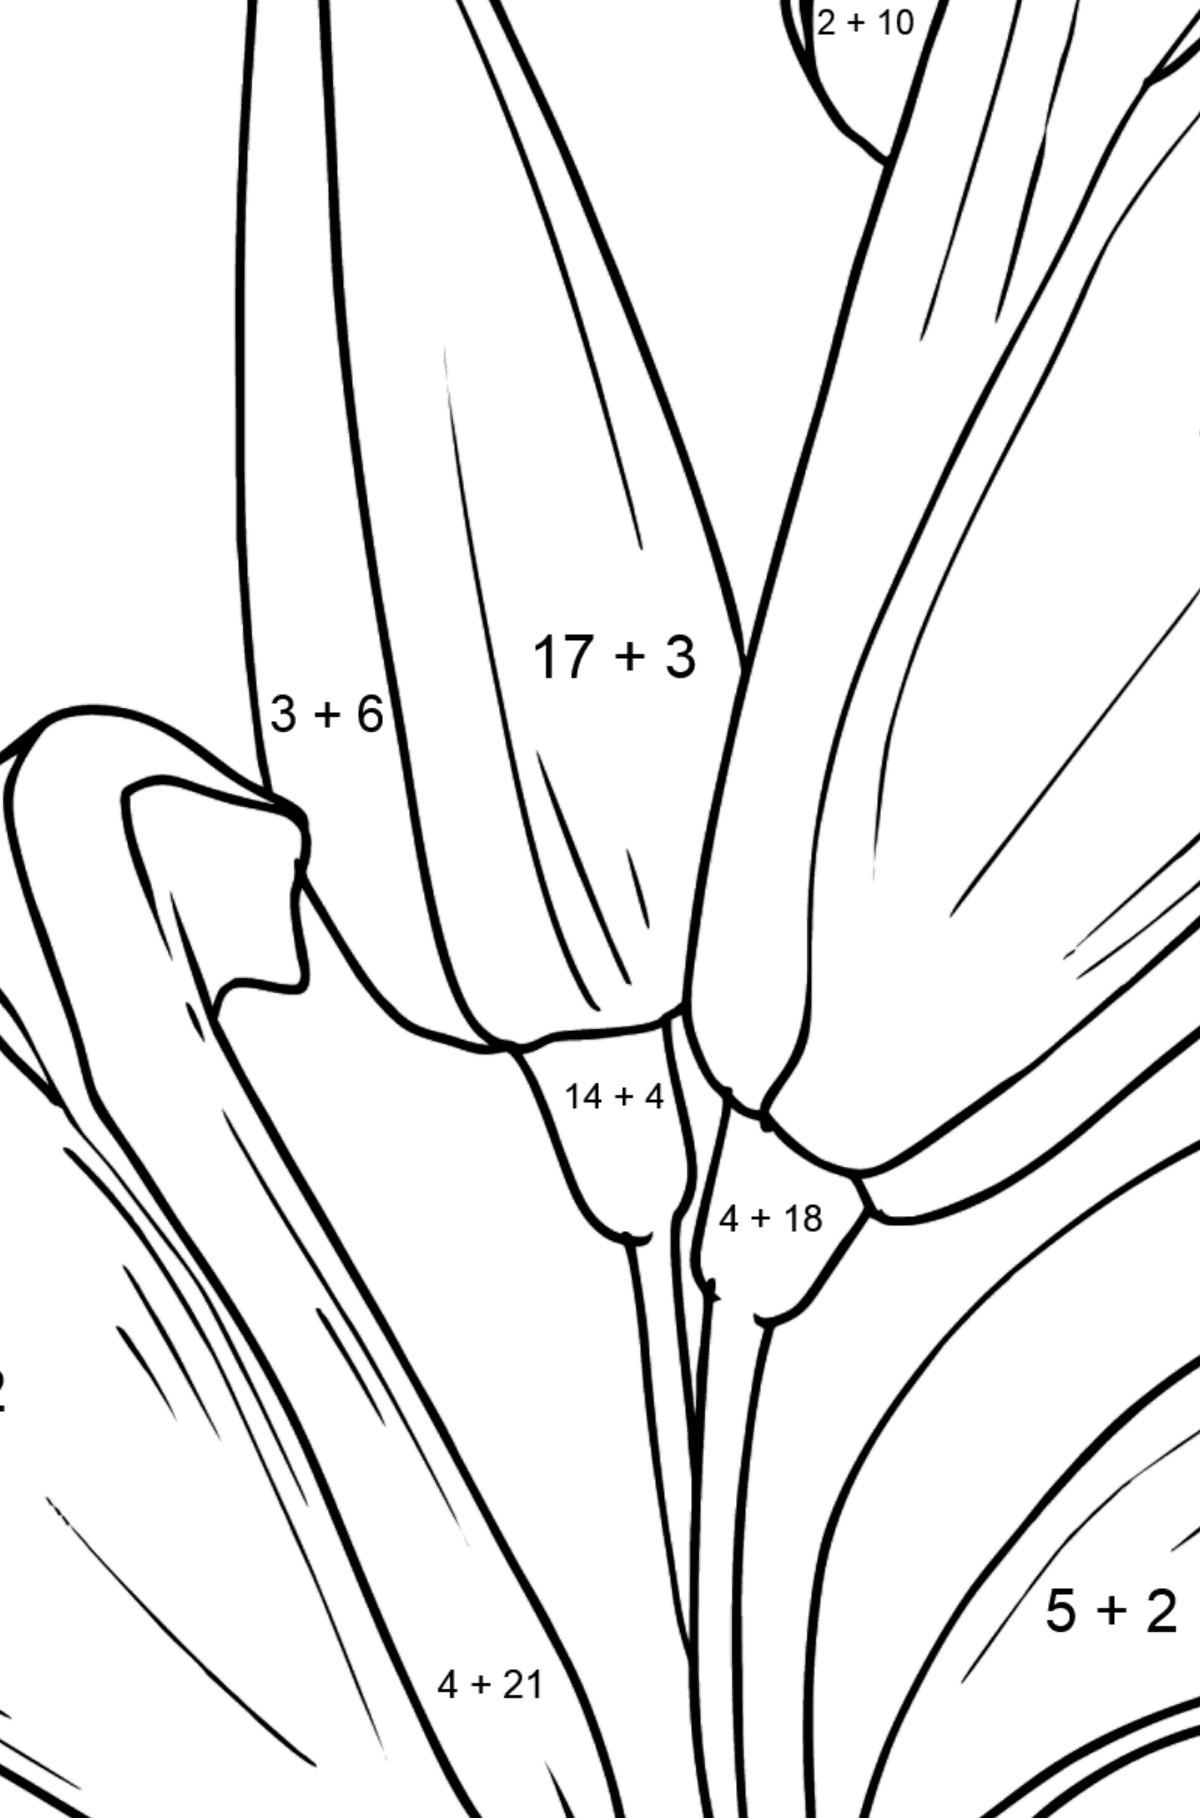 Flower Coloring Page - Lilies - Math Coloring - Addition for Kids